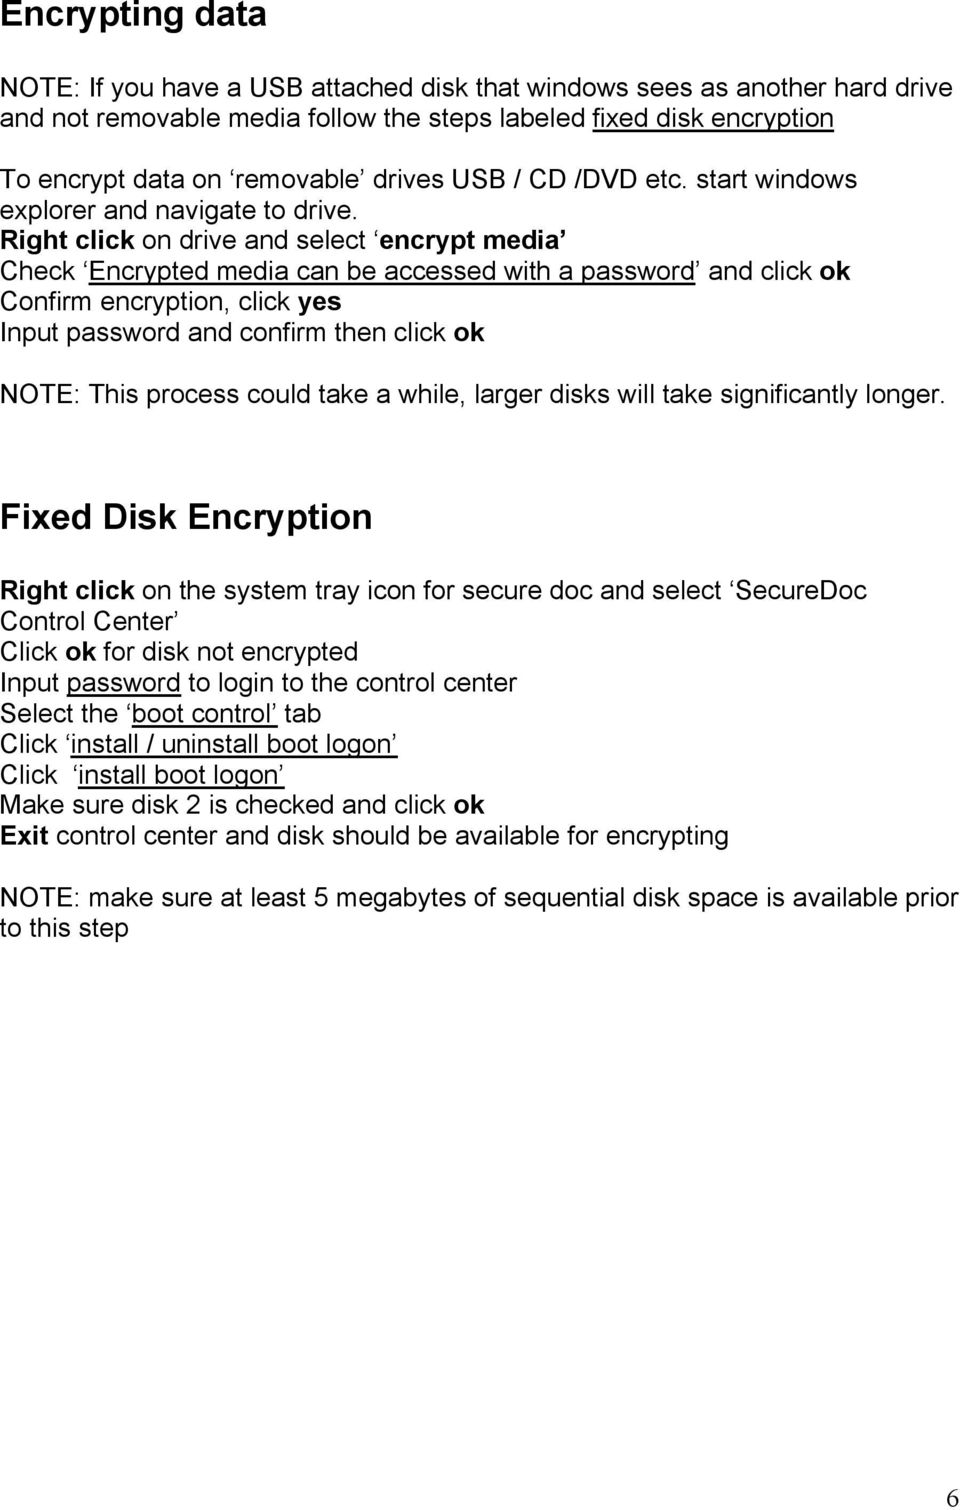 Right click on drive and select encrypt media Check Encrypted media can be accessed with a password and click ok Confirm encryption, click yes Input password and confirm then click ok NOTE: This